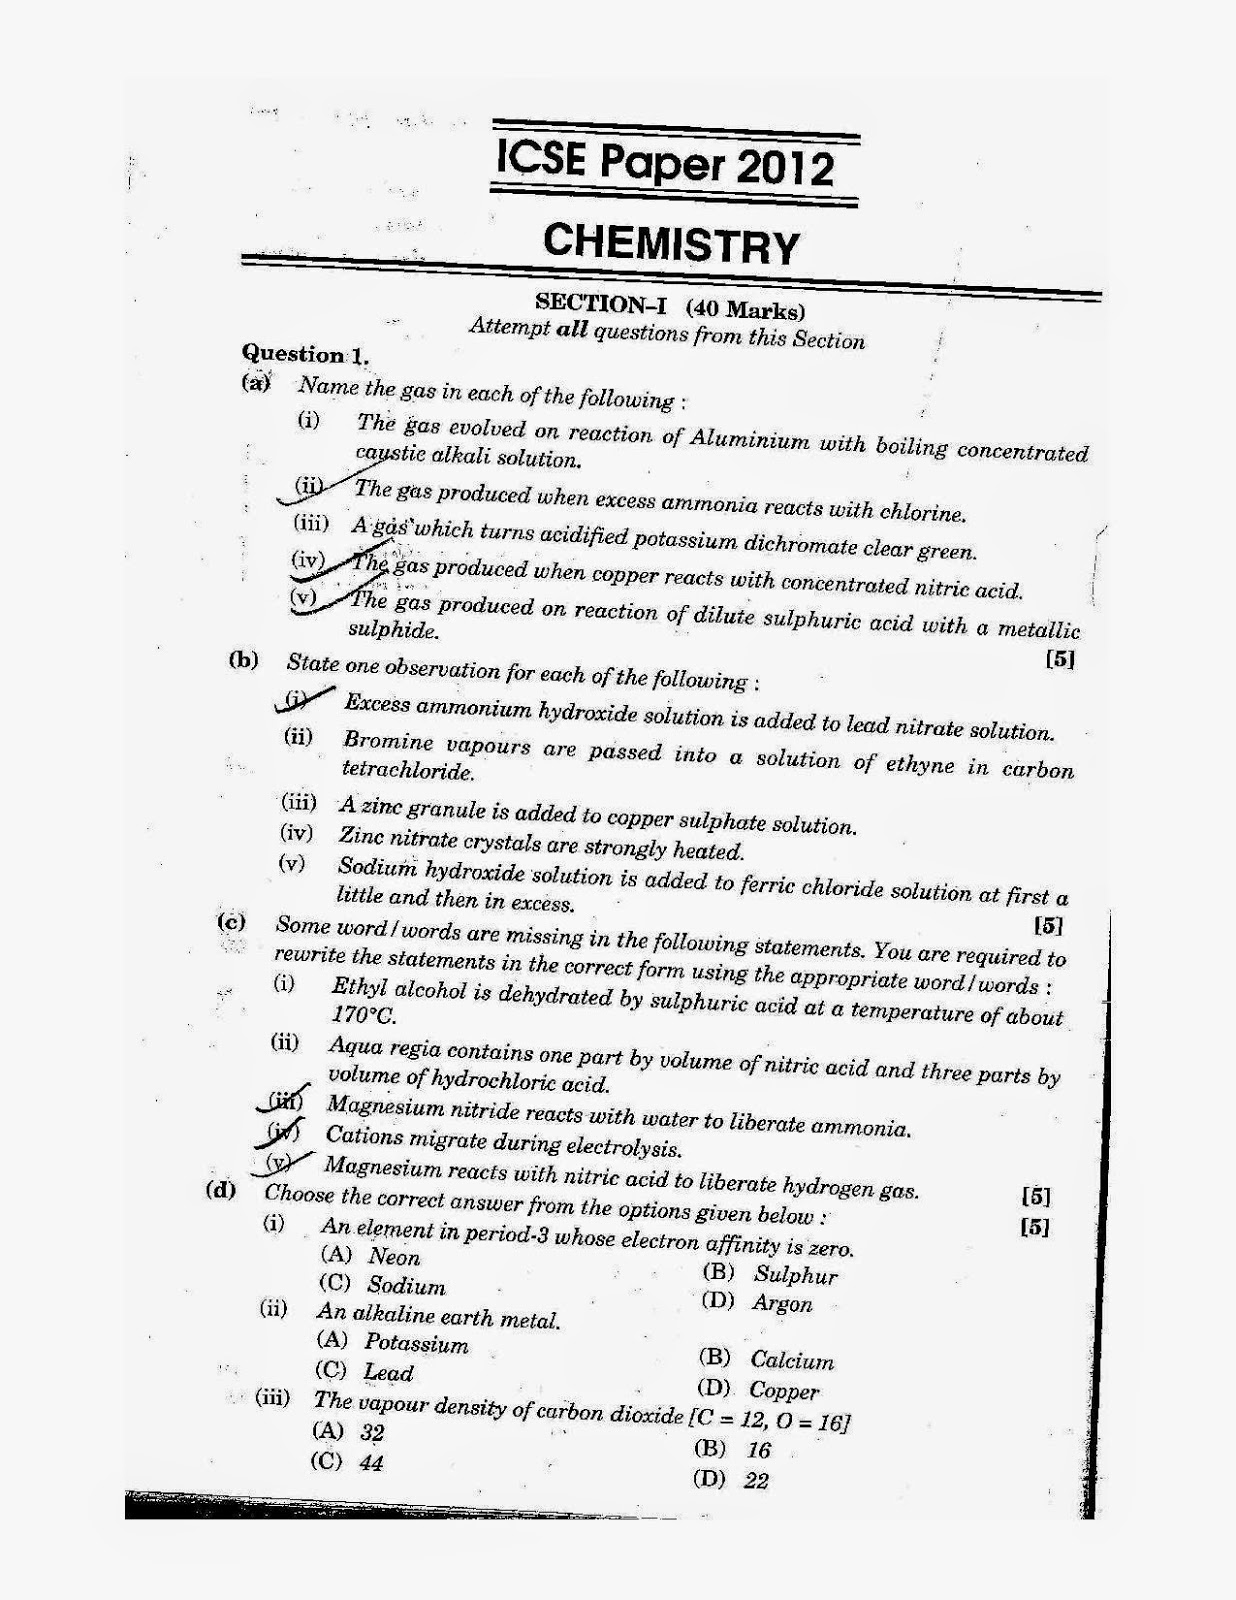 is personality science essay Psychology essays on personality traits  environmental science research papers biology argumentative essay about bangsamoro basic law het nieuws van 11 september 2001 essay providence college essay how to start an essay about my career goals akram khan rushessay review.